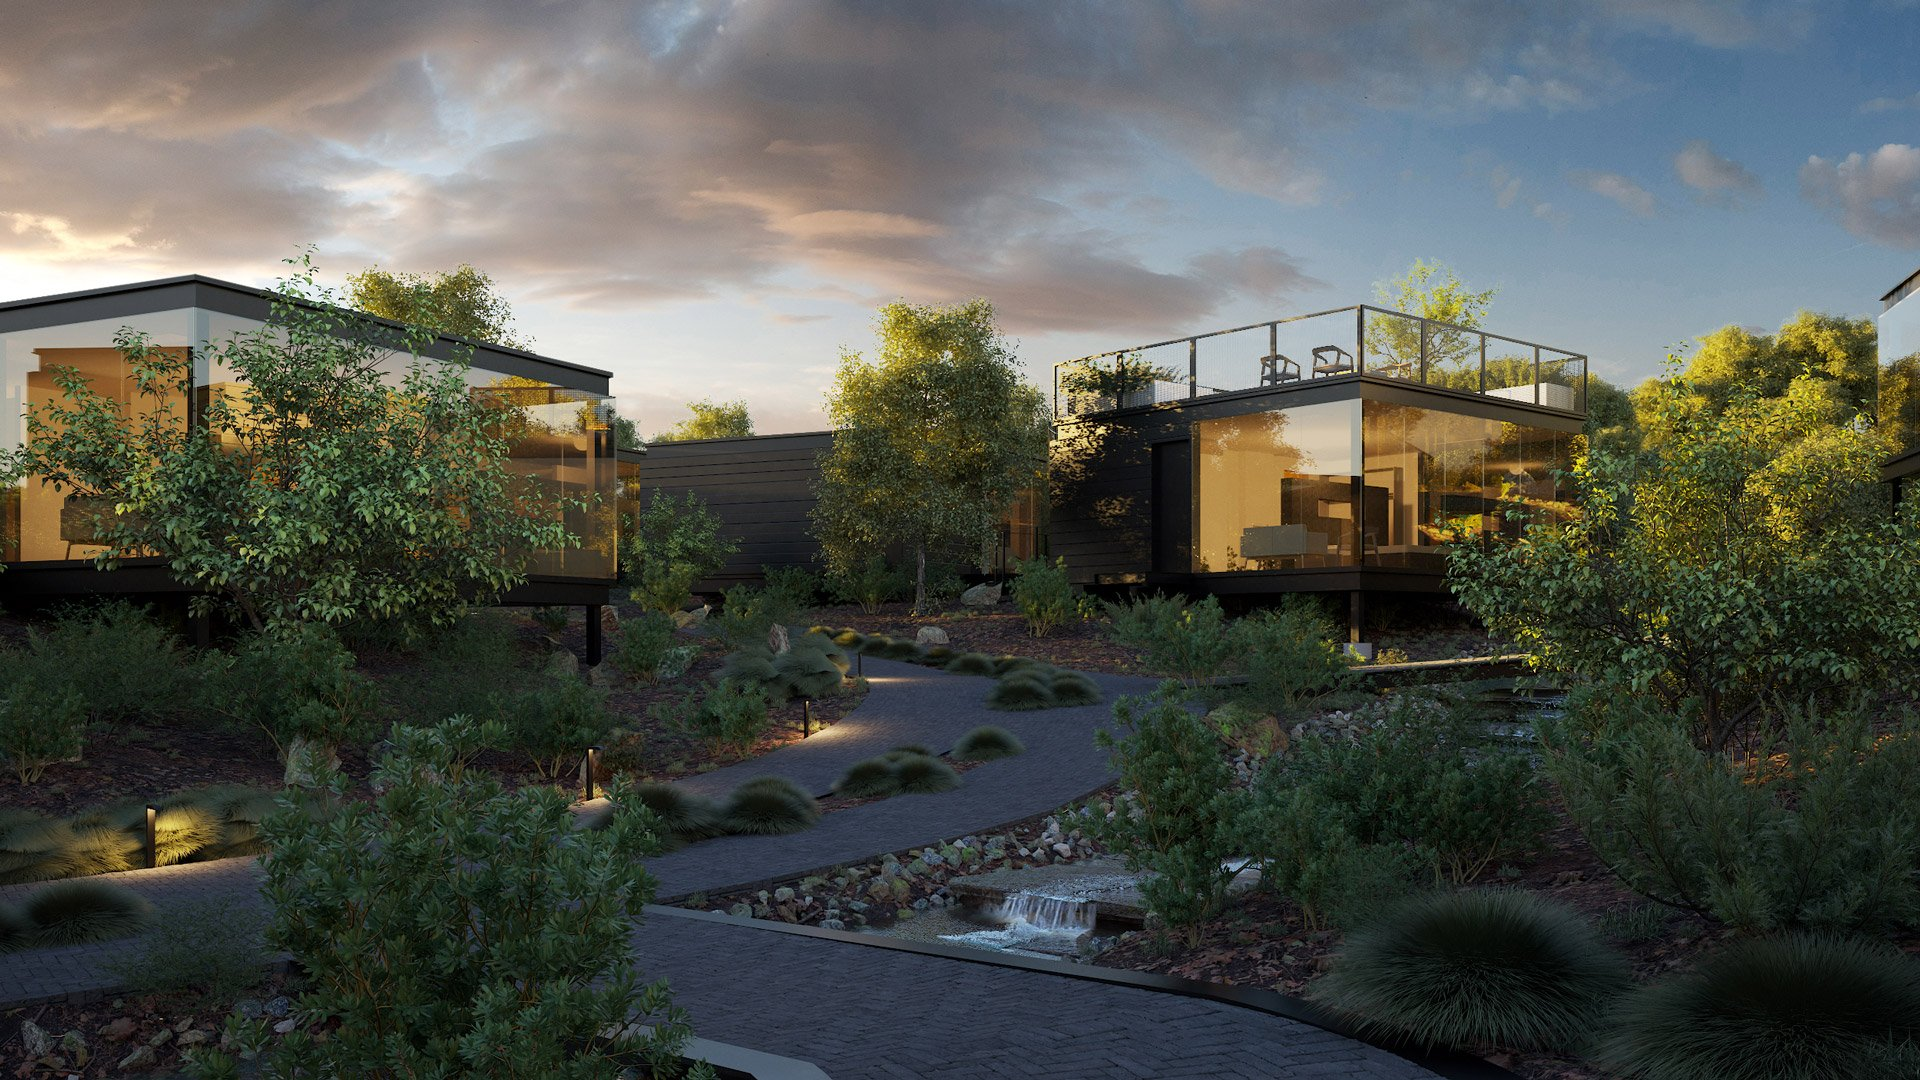 CG Visualization for a Cottage Complex Exterior